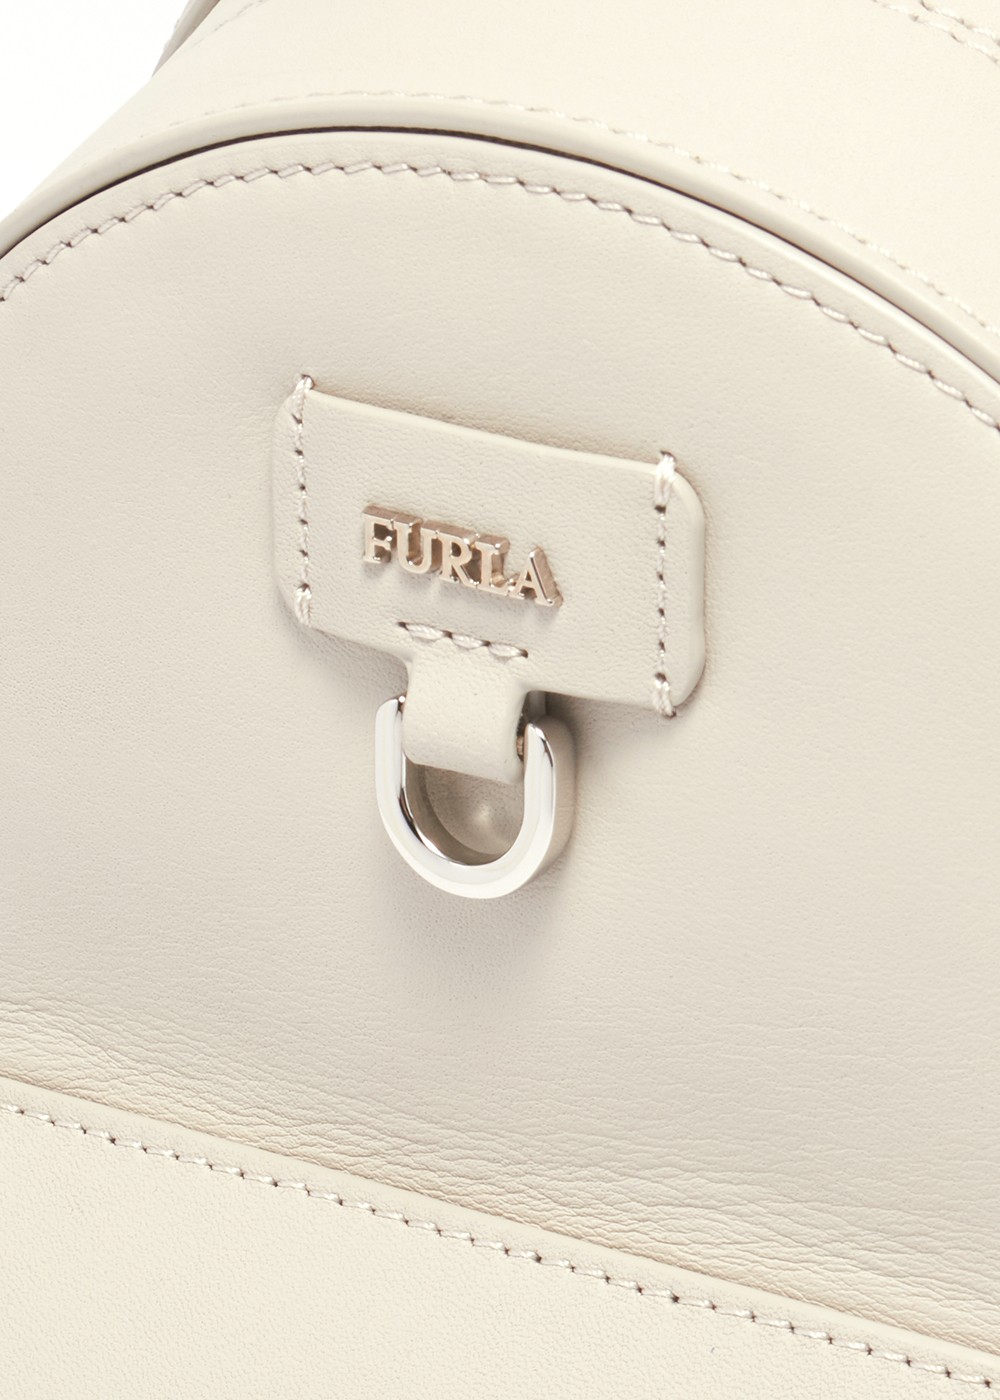 【最大57%OFF】【FURLA】FURLA FAVOLAミニバッグ|GDJ|リュック|2019 SPRING & SUMMER NEW ARRIVAL COLLECTION